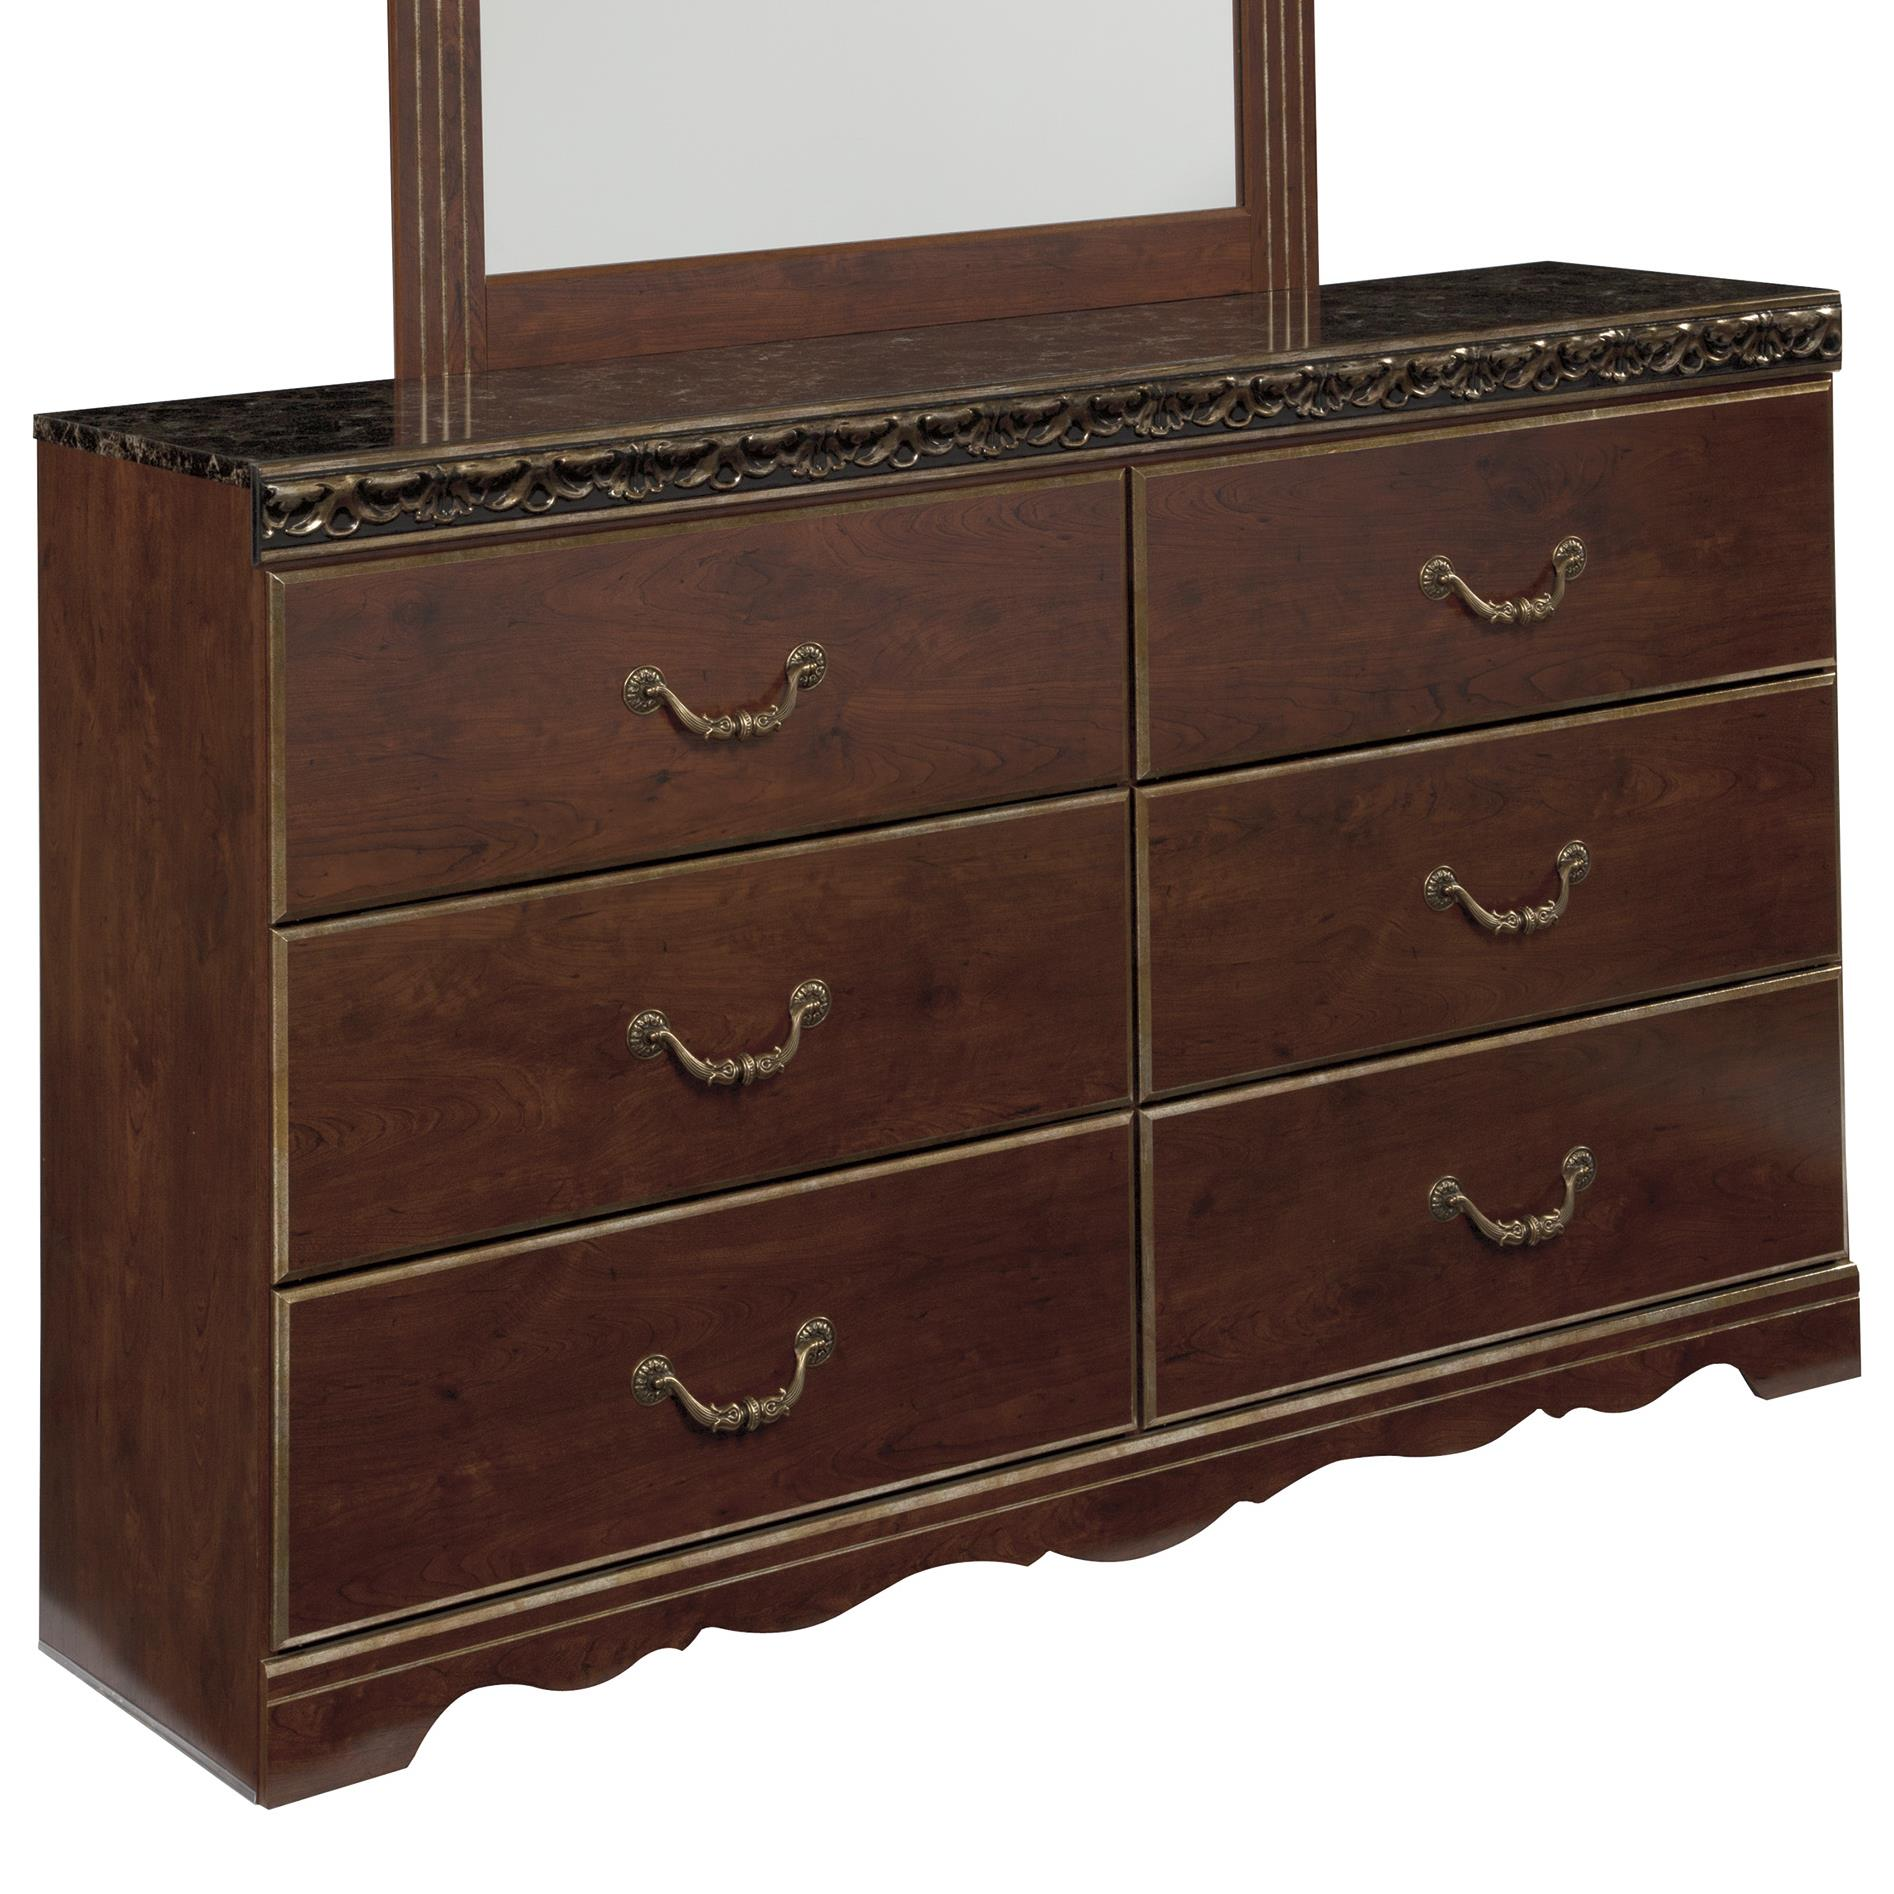 Signature Design by Ashley Naralyn 6 Drawer Dresser - Item Number: B164-31